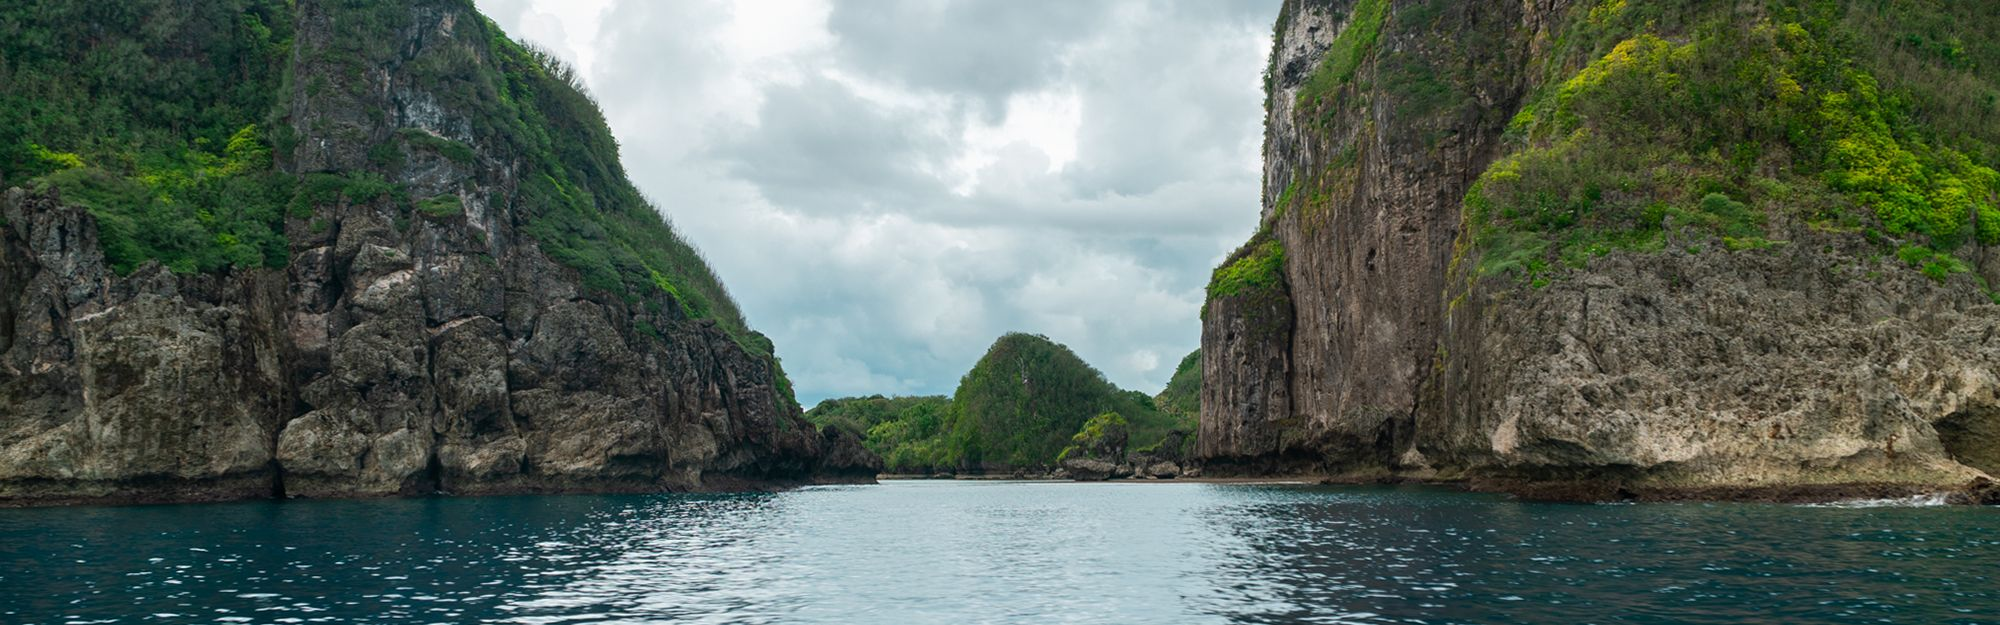 Boating trip along Guam's west coast